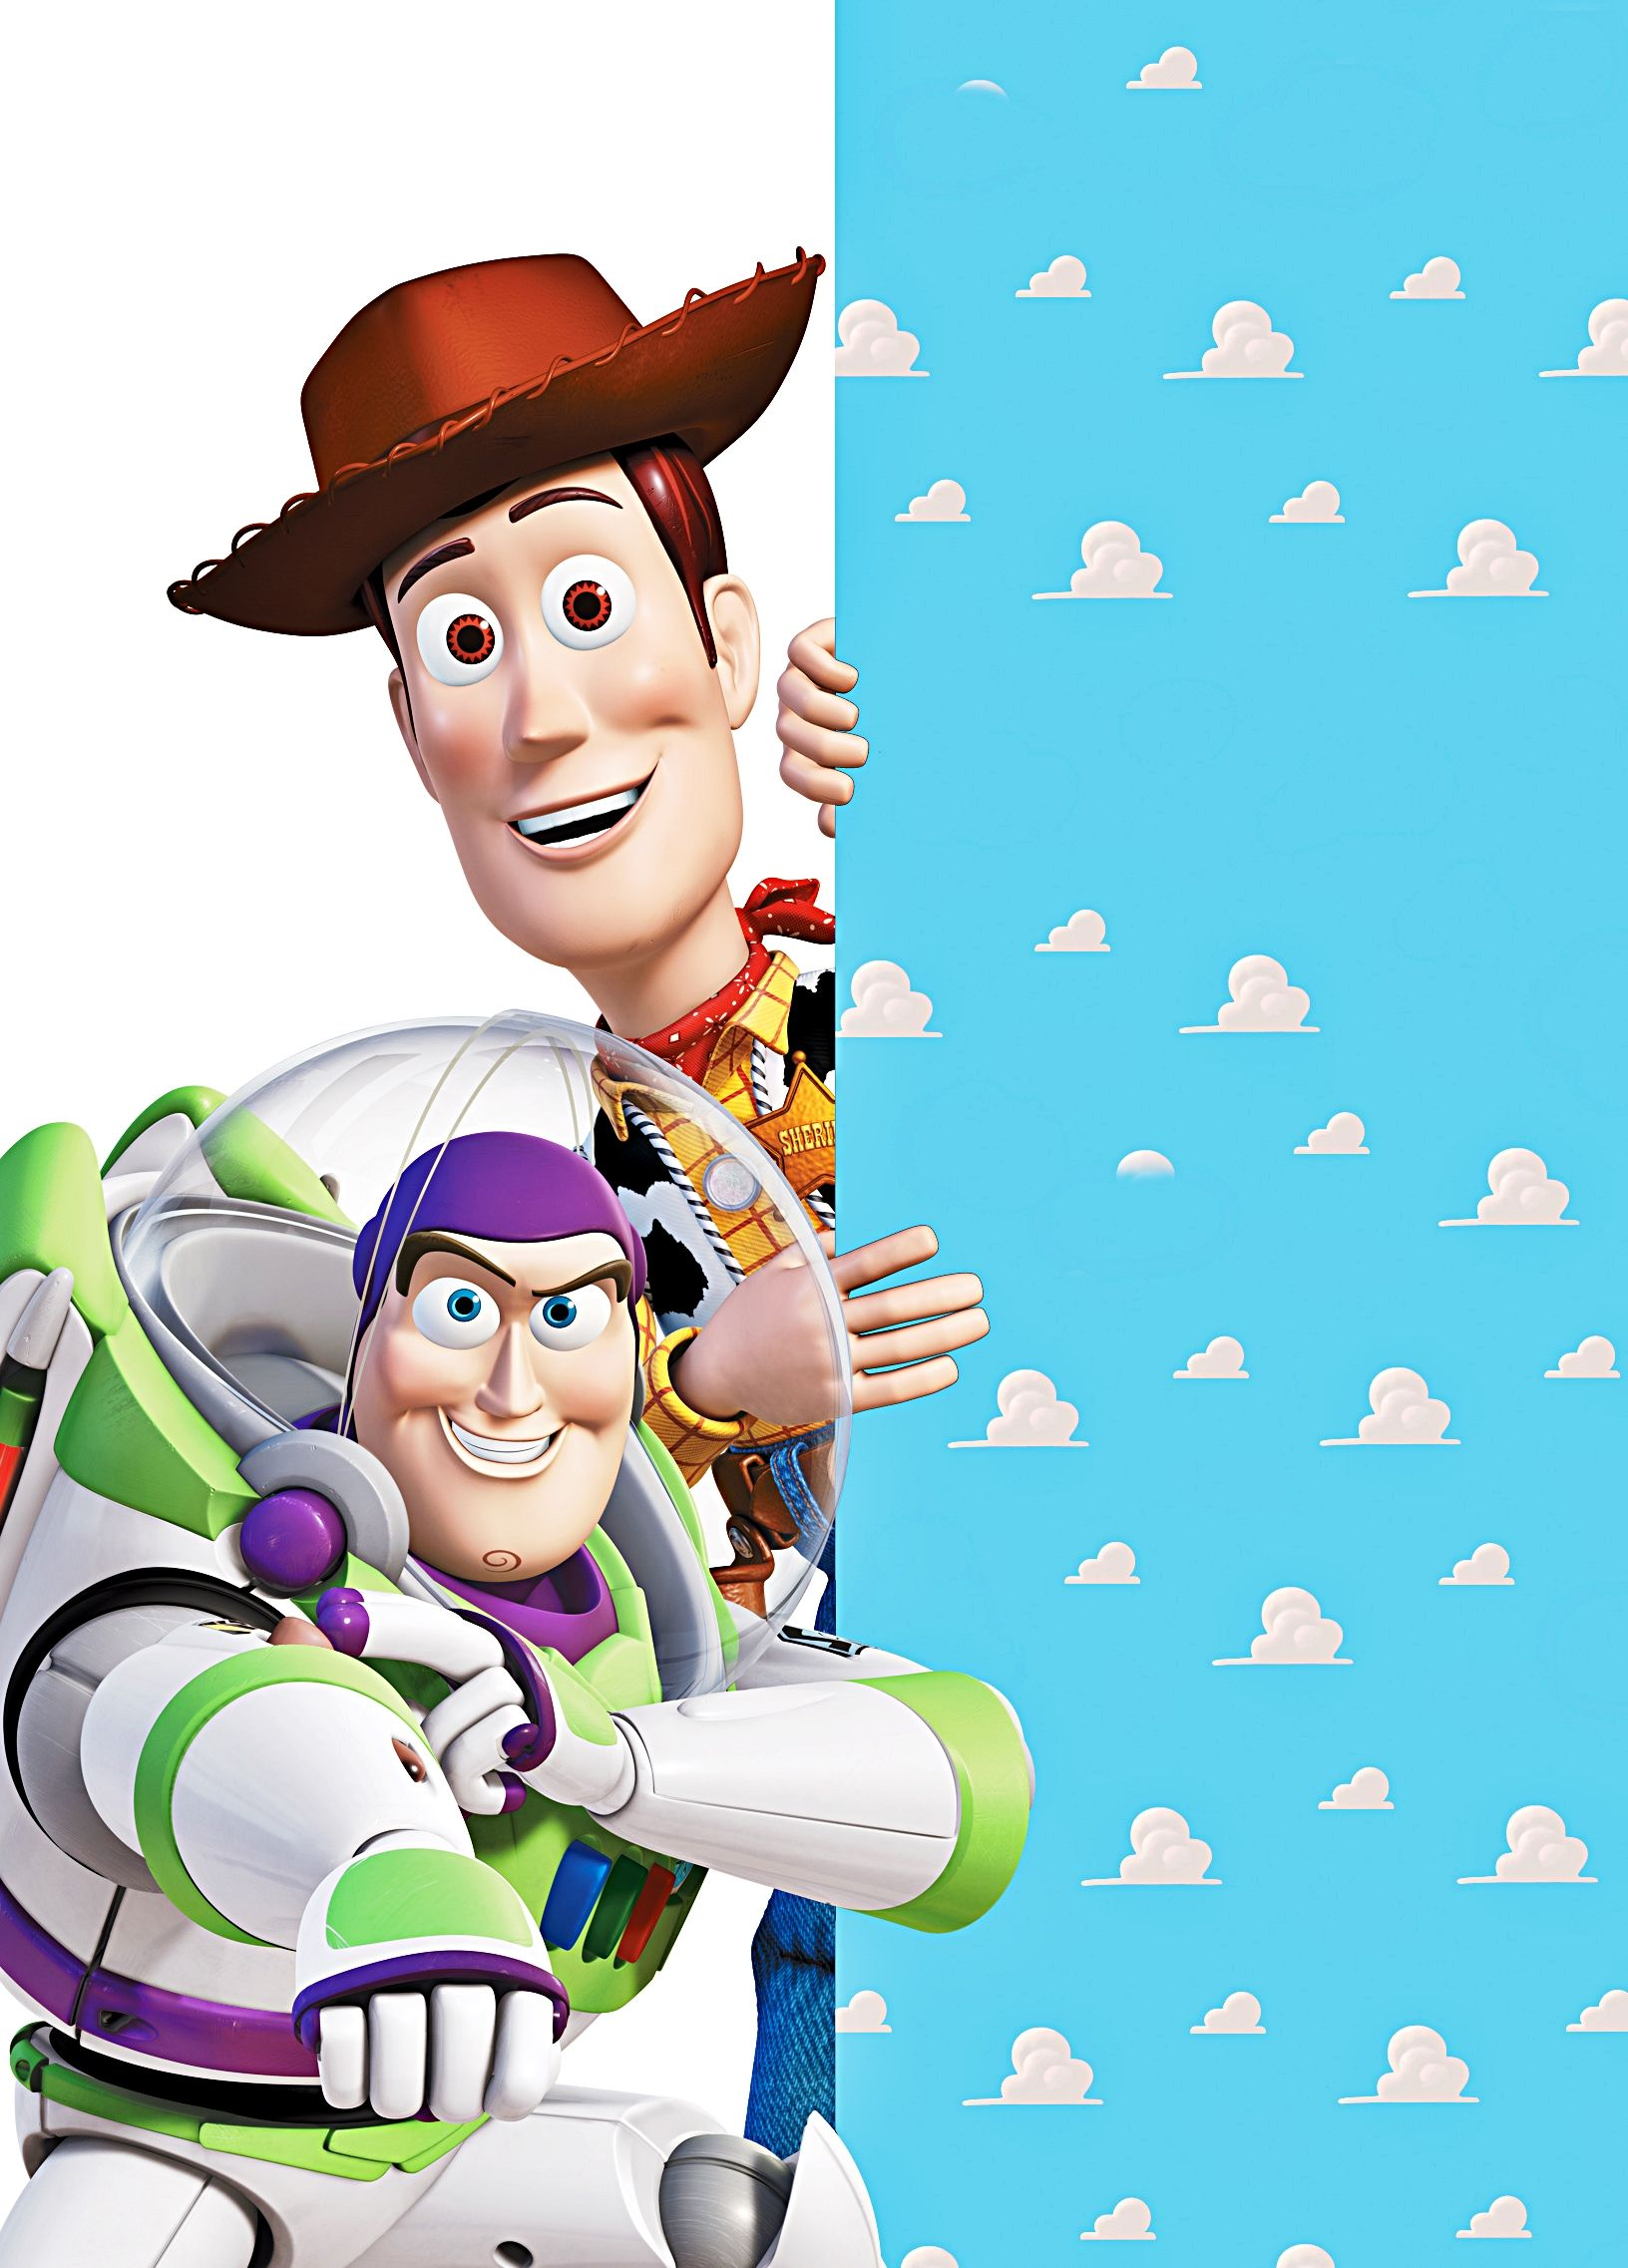 Disney Characters poster | Walt Disney Characters Disney•Pixar Posters - Toy Story